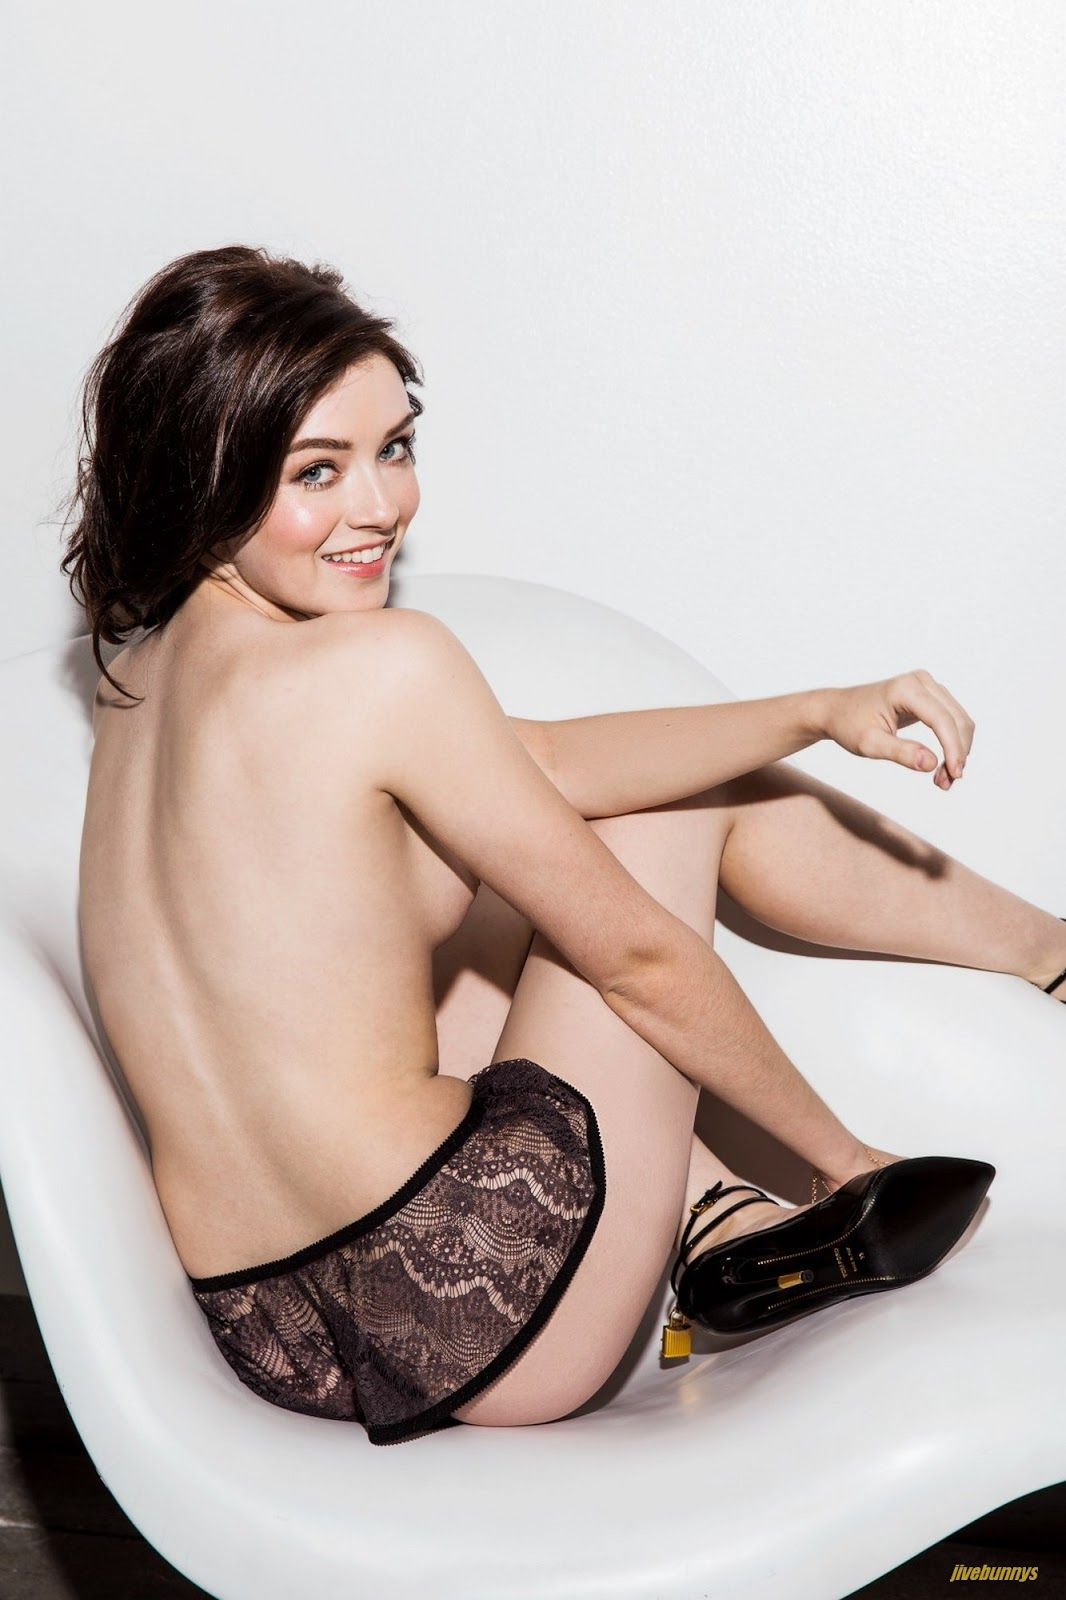 Cleavage Sarah Bolger nude (25 photos), Ass, Cleavage, Selfie, lingerie 2019